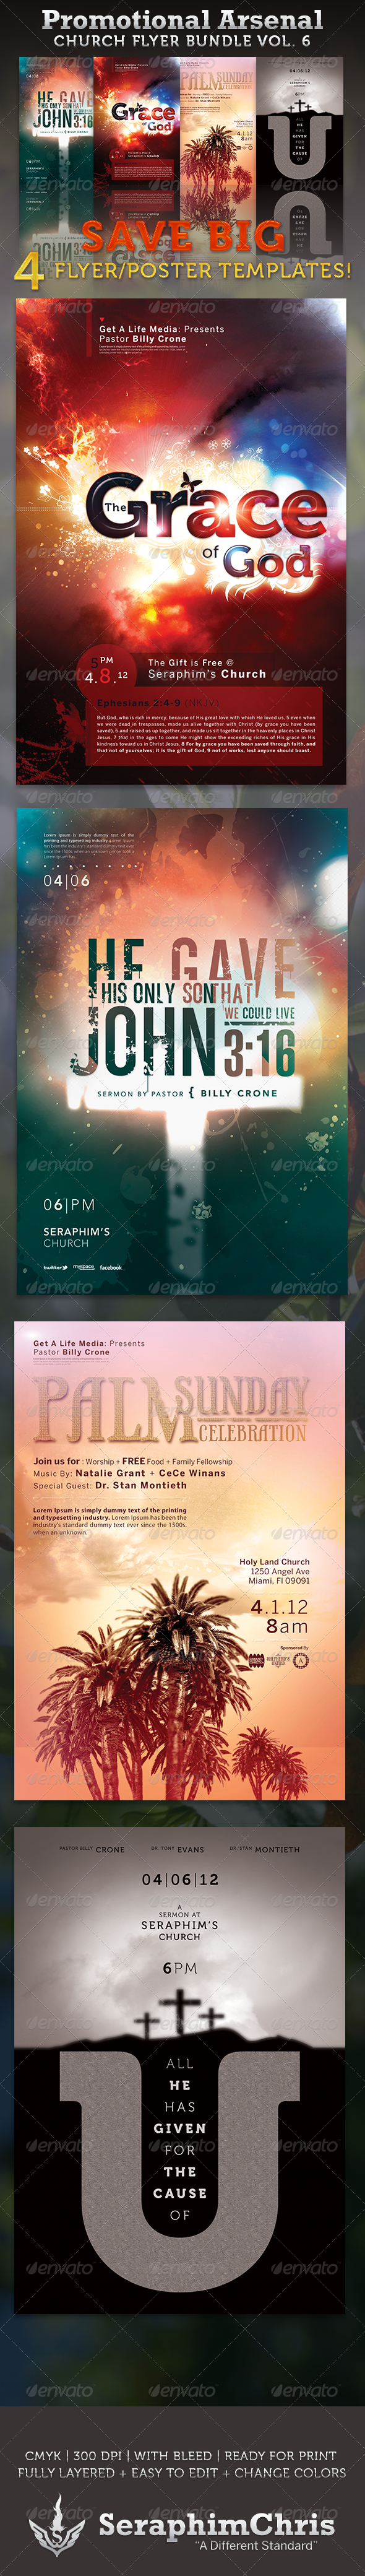 GraphicRiver Promotional Arsenal Church Flyer Bundle 6 3305117